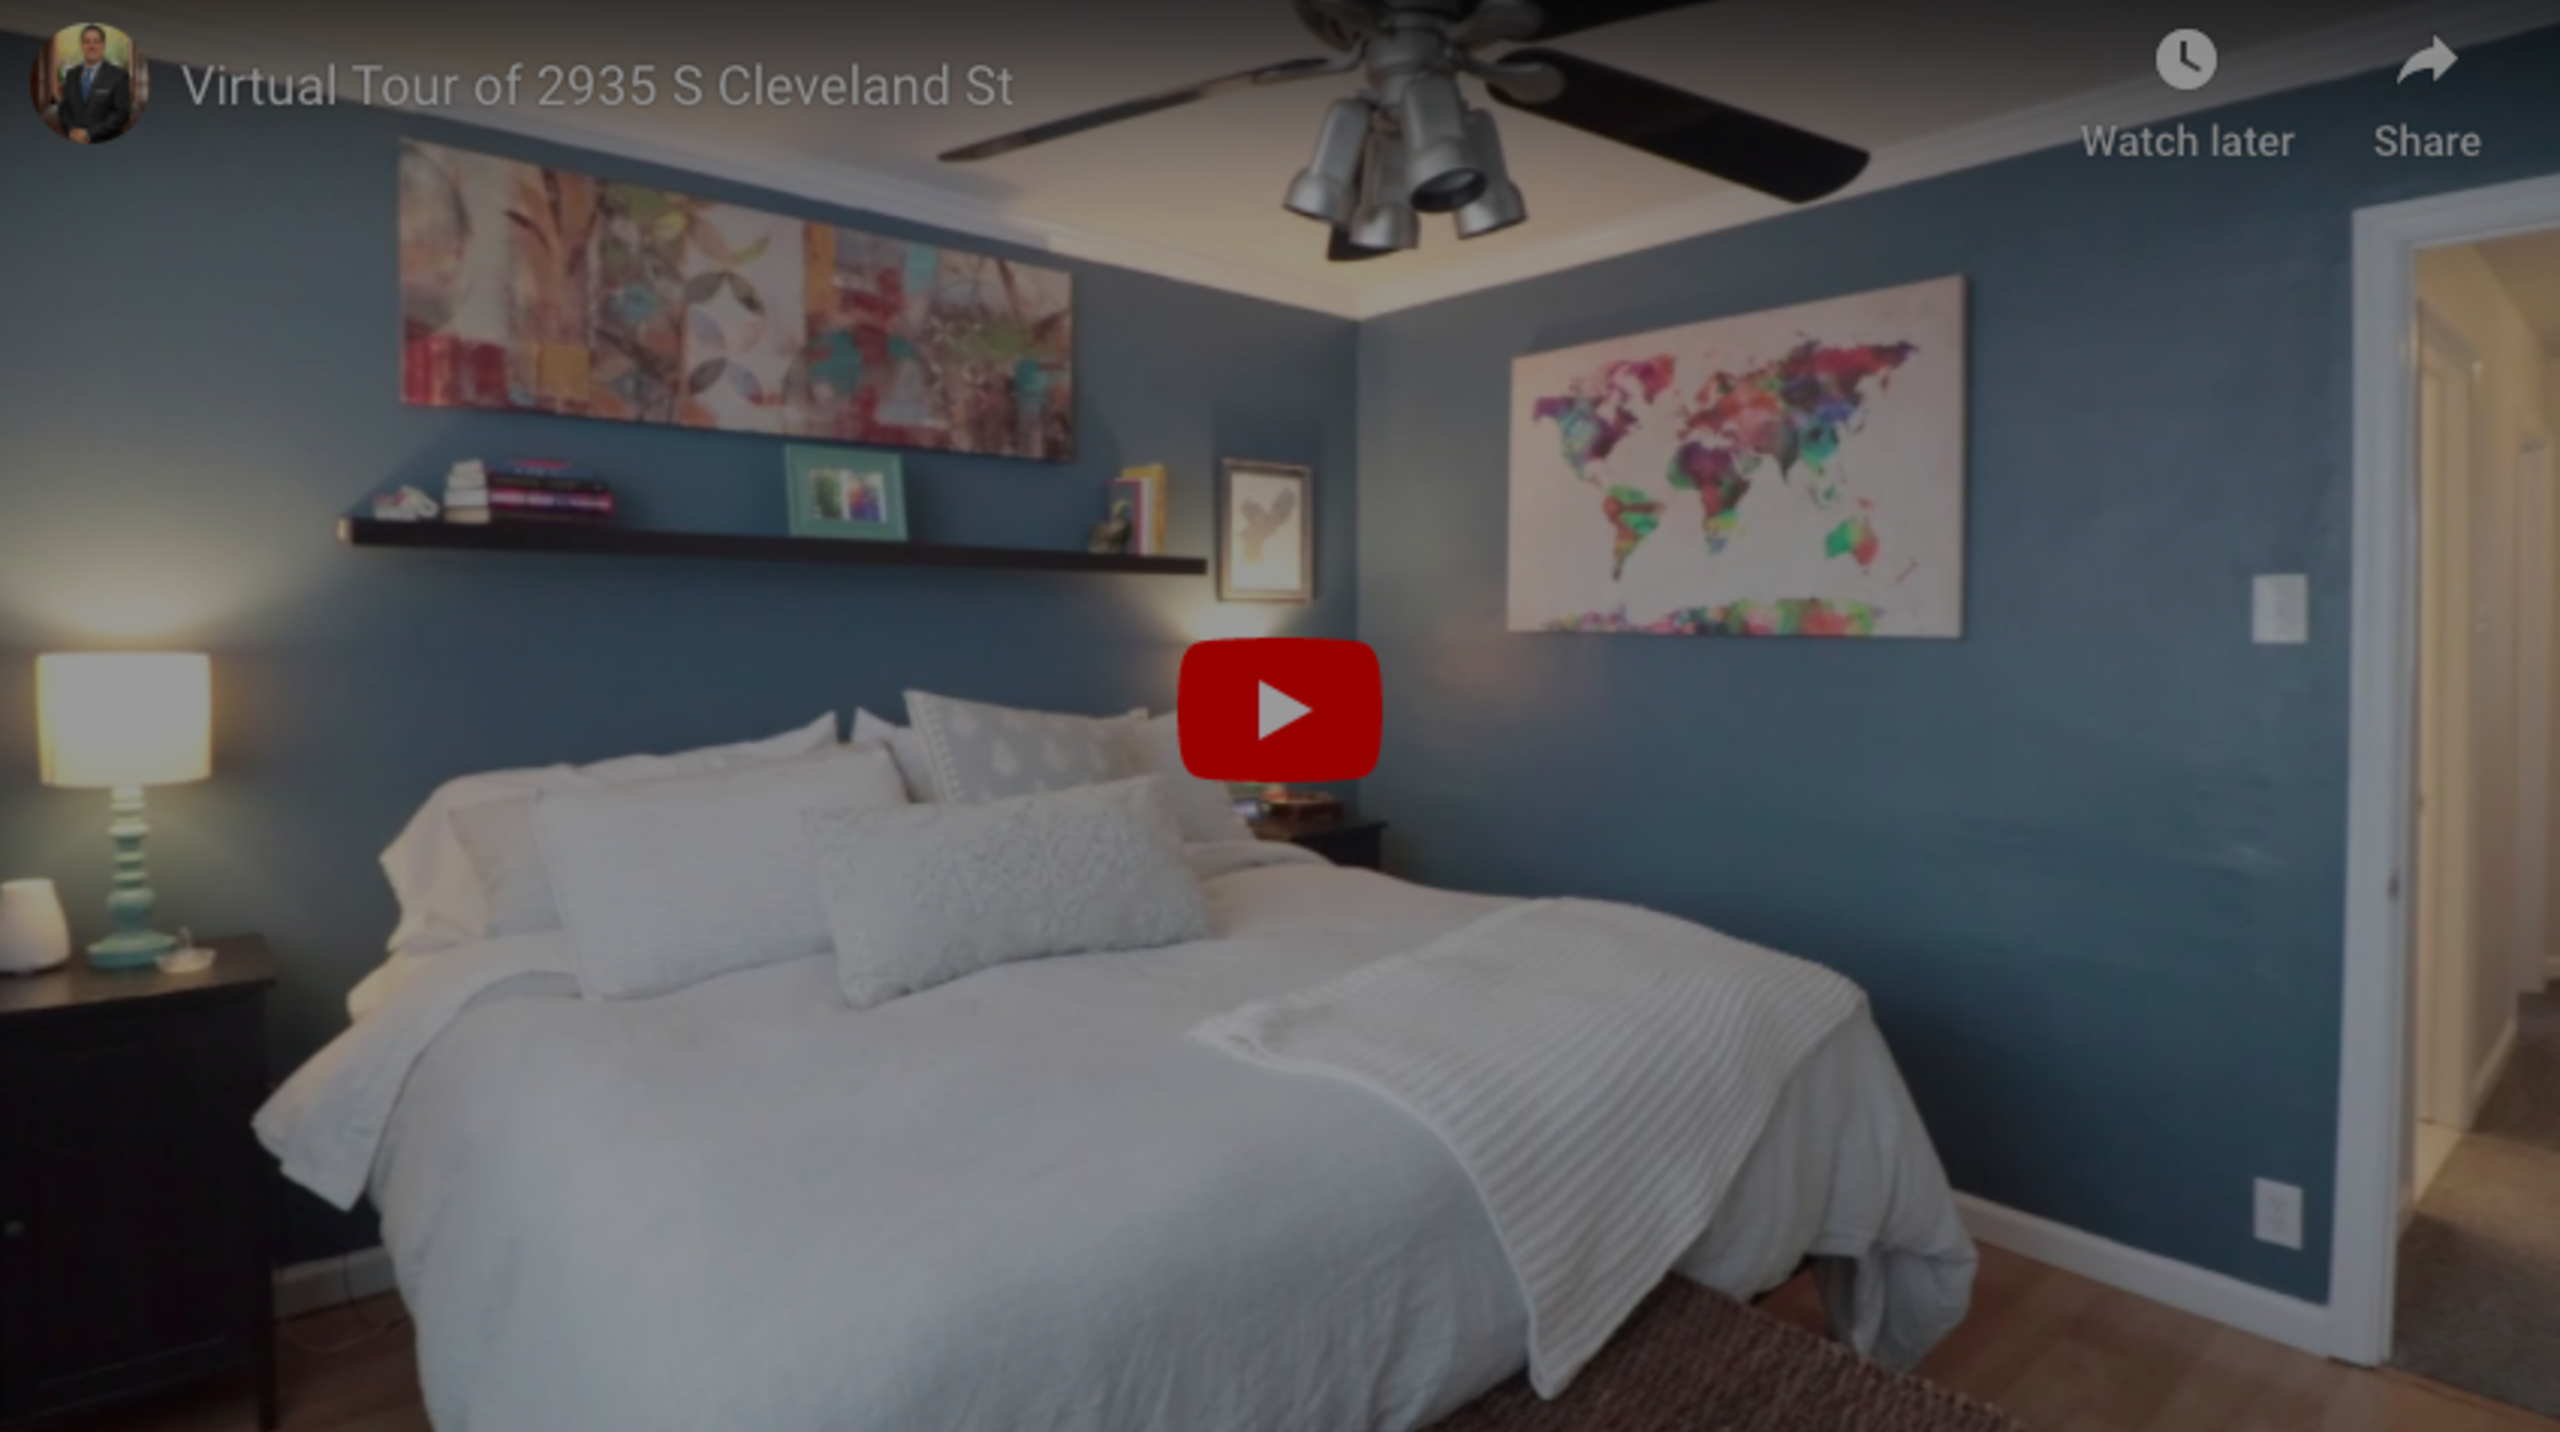 Virtual Tour of 2935 S Cleveland Street